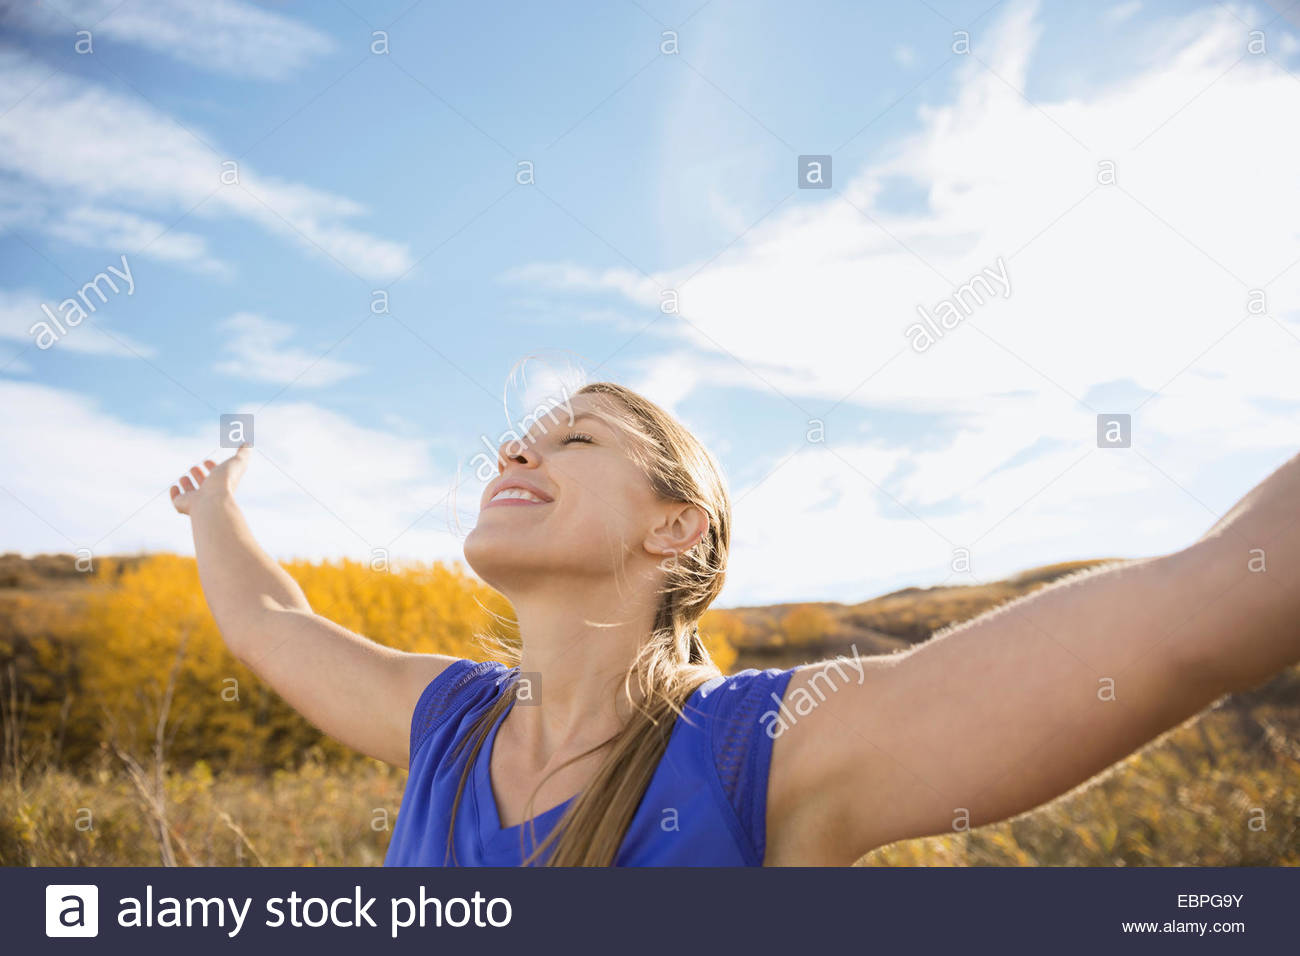 Smiling woman basking in sunlight in rural field - Stock Image